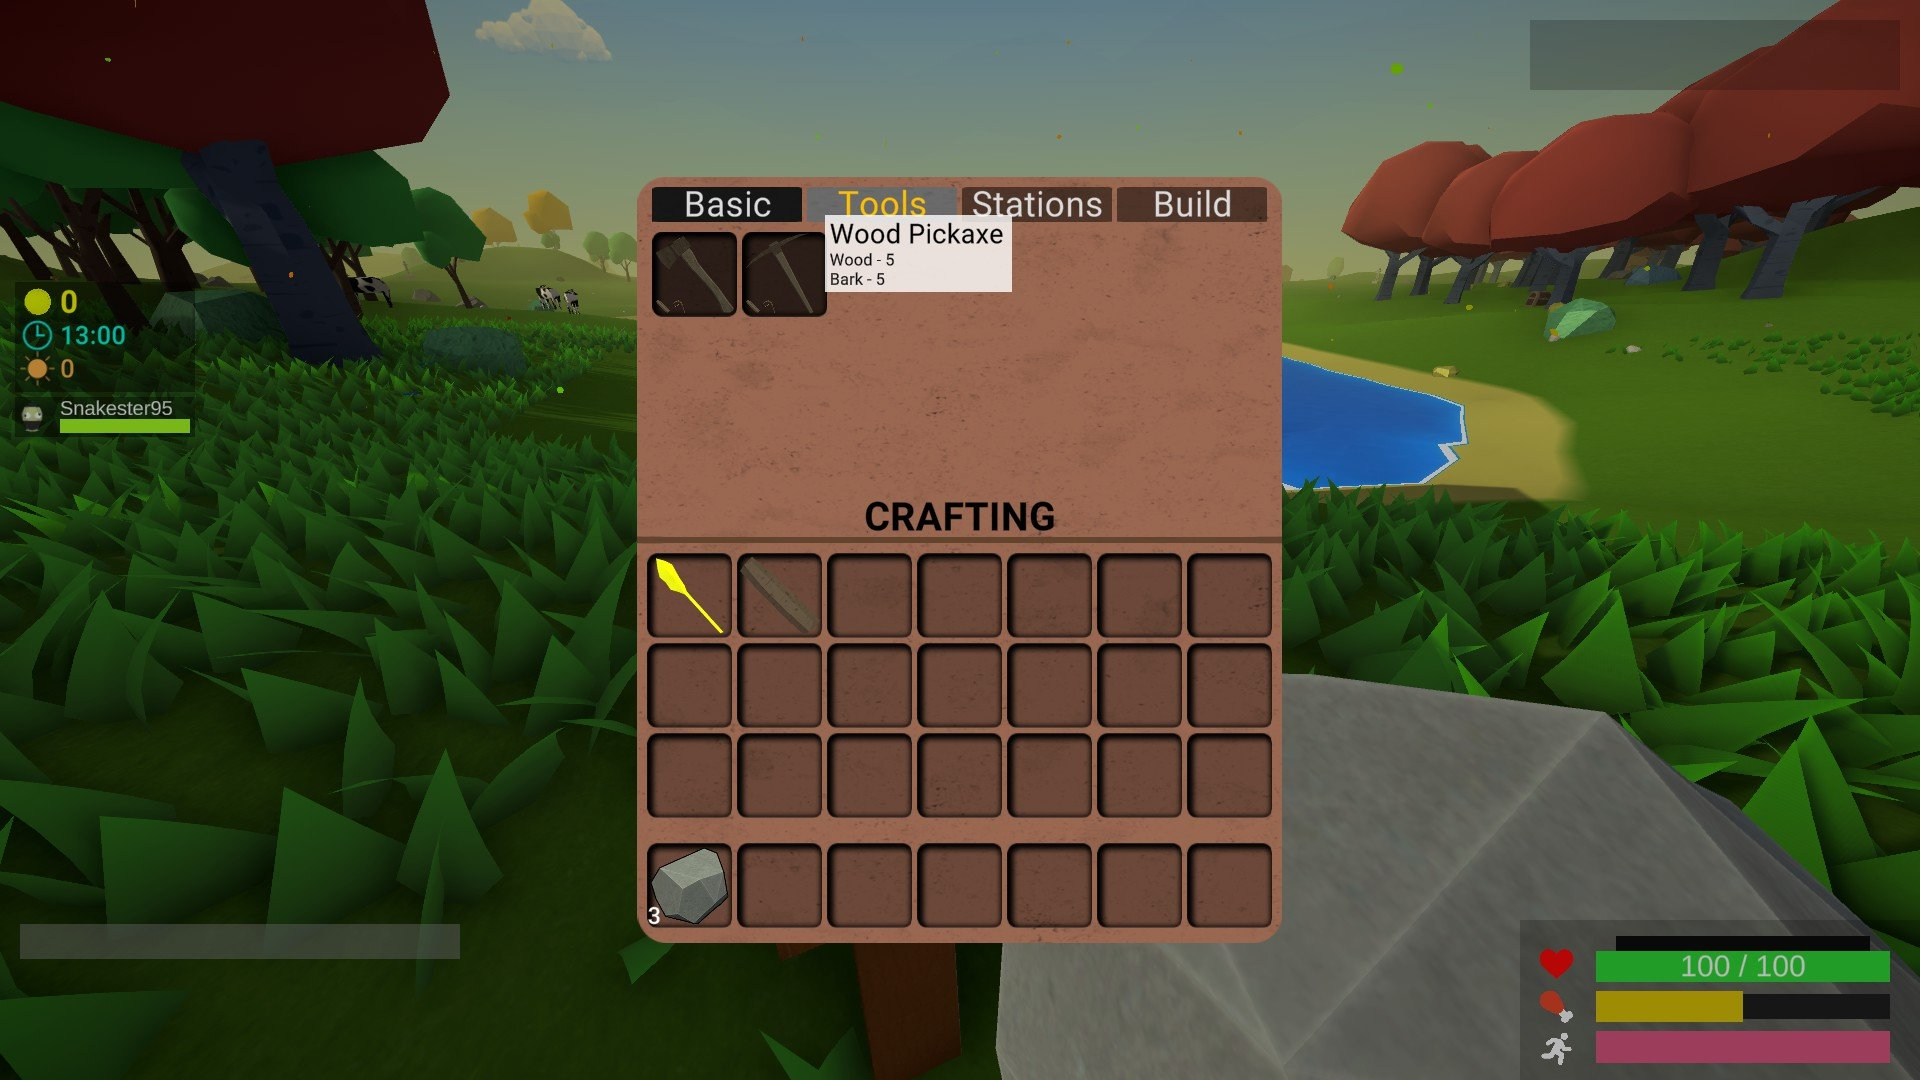 Muck - How to Craft Tools